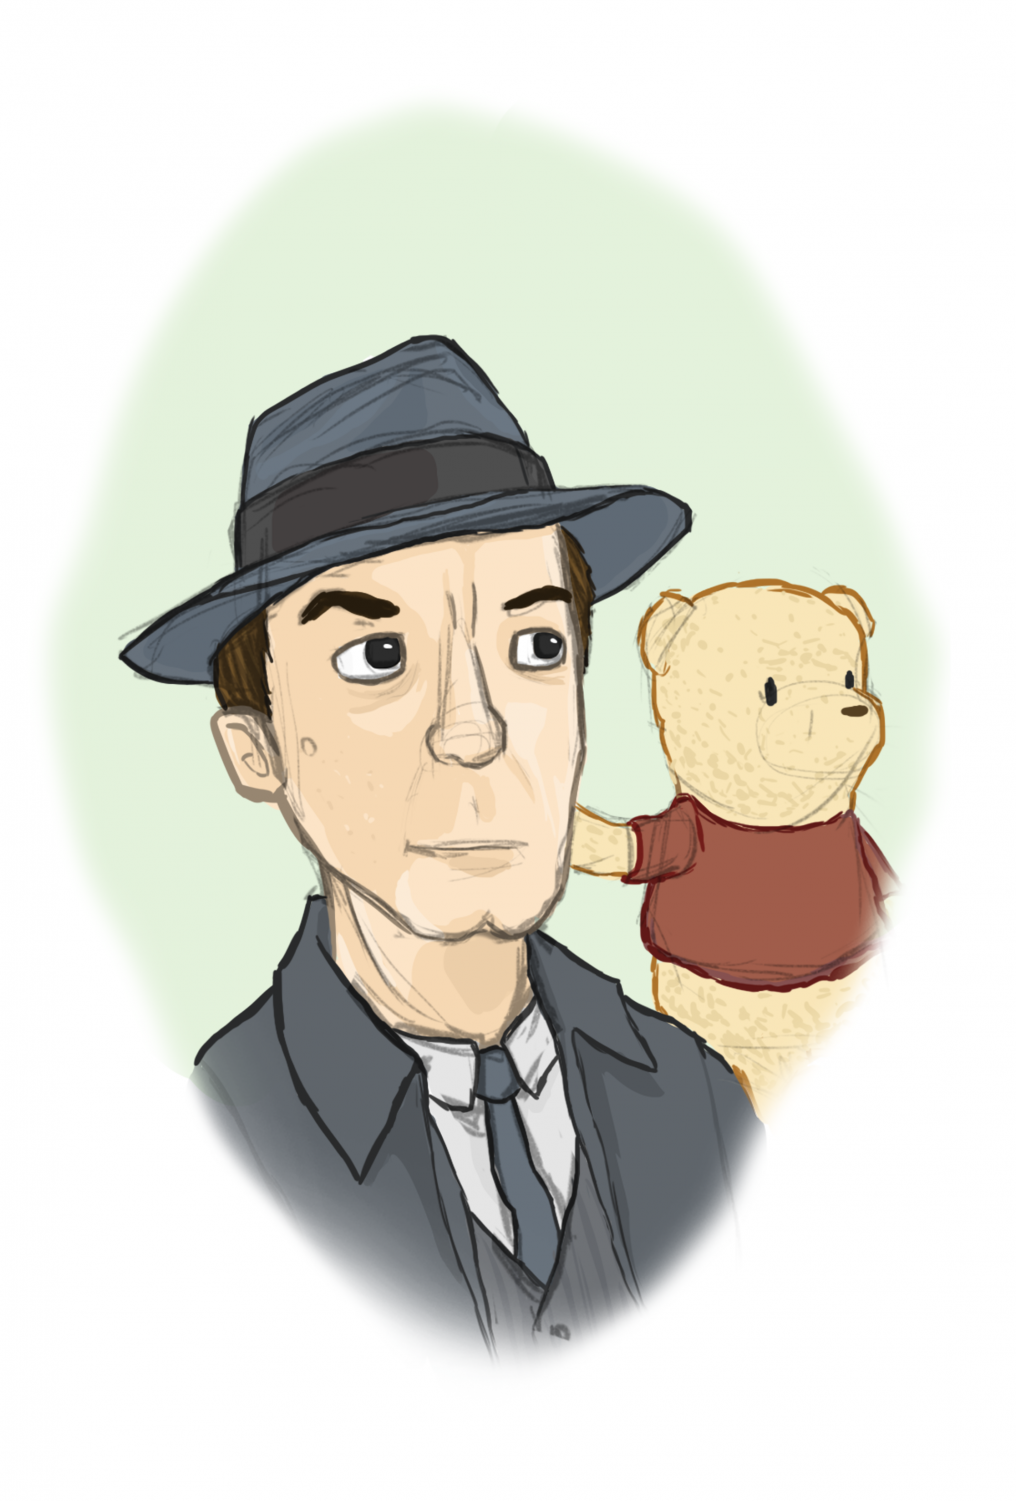 A business man and his bear.